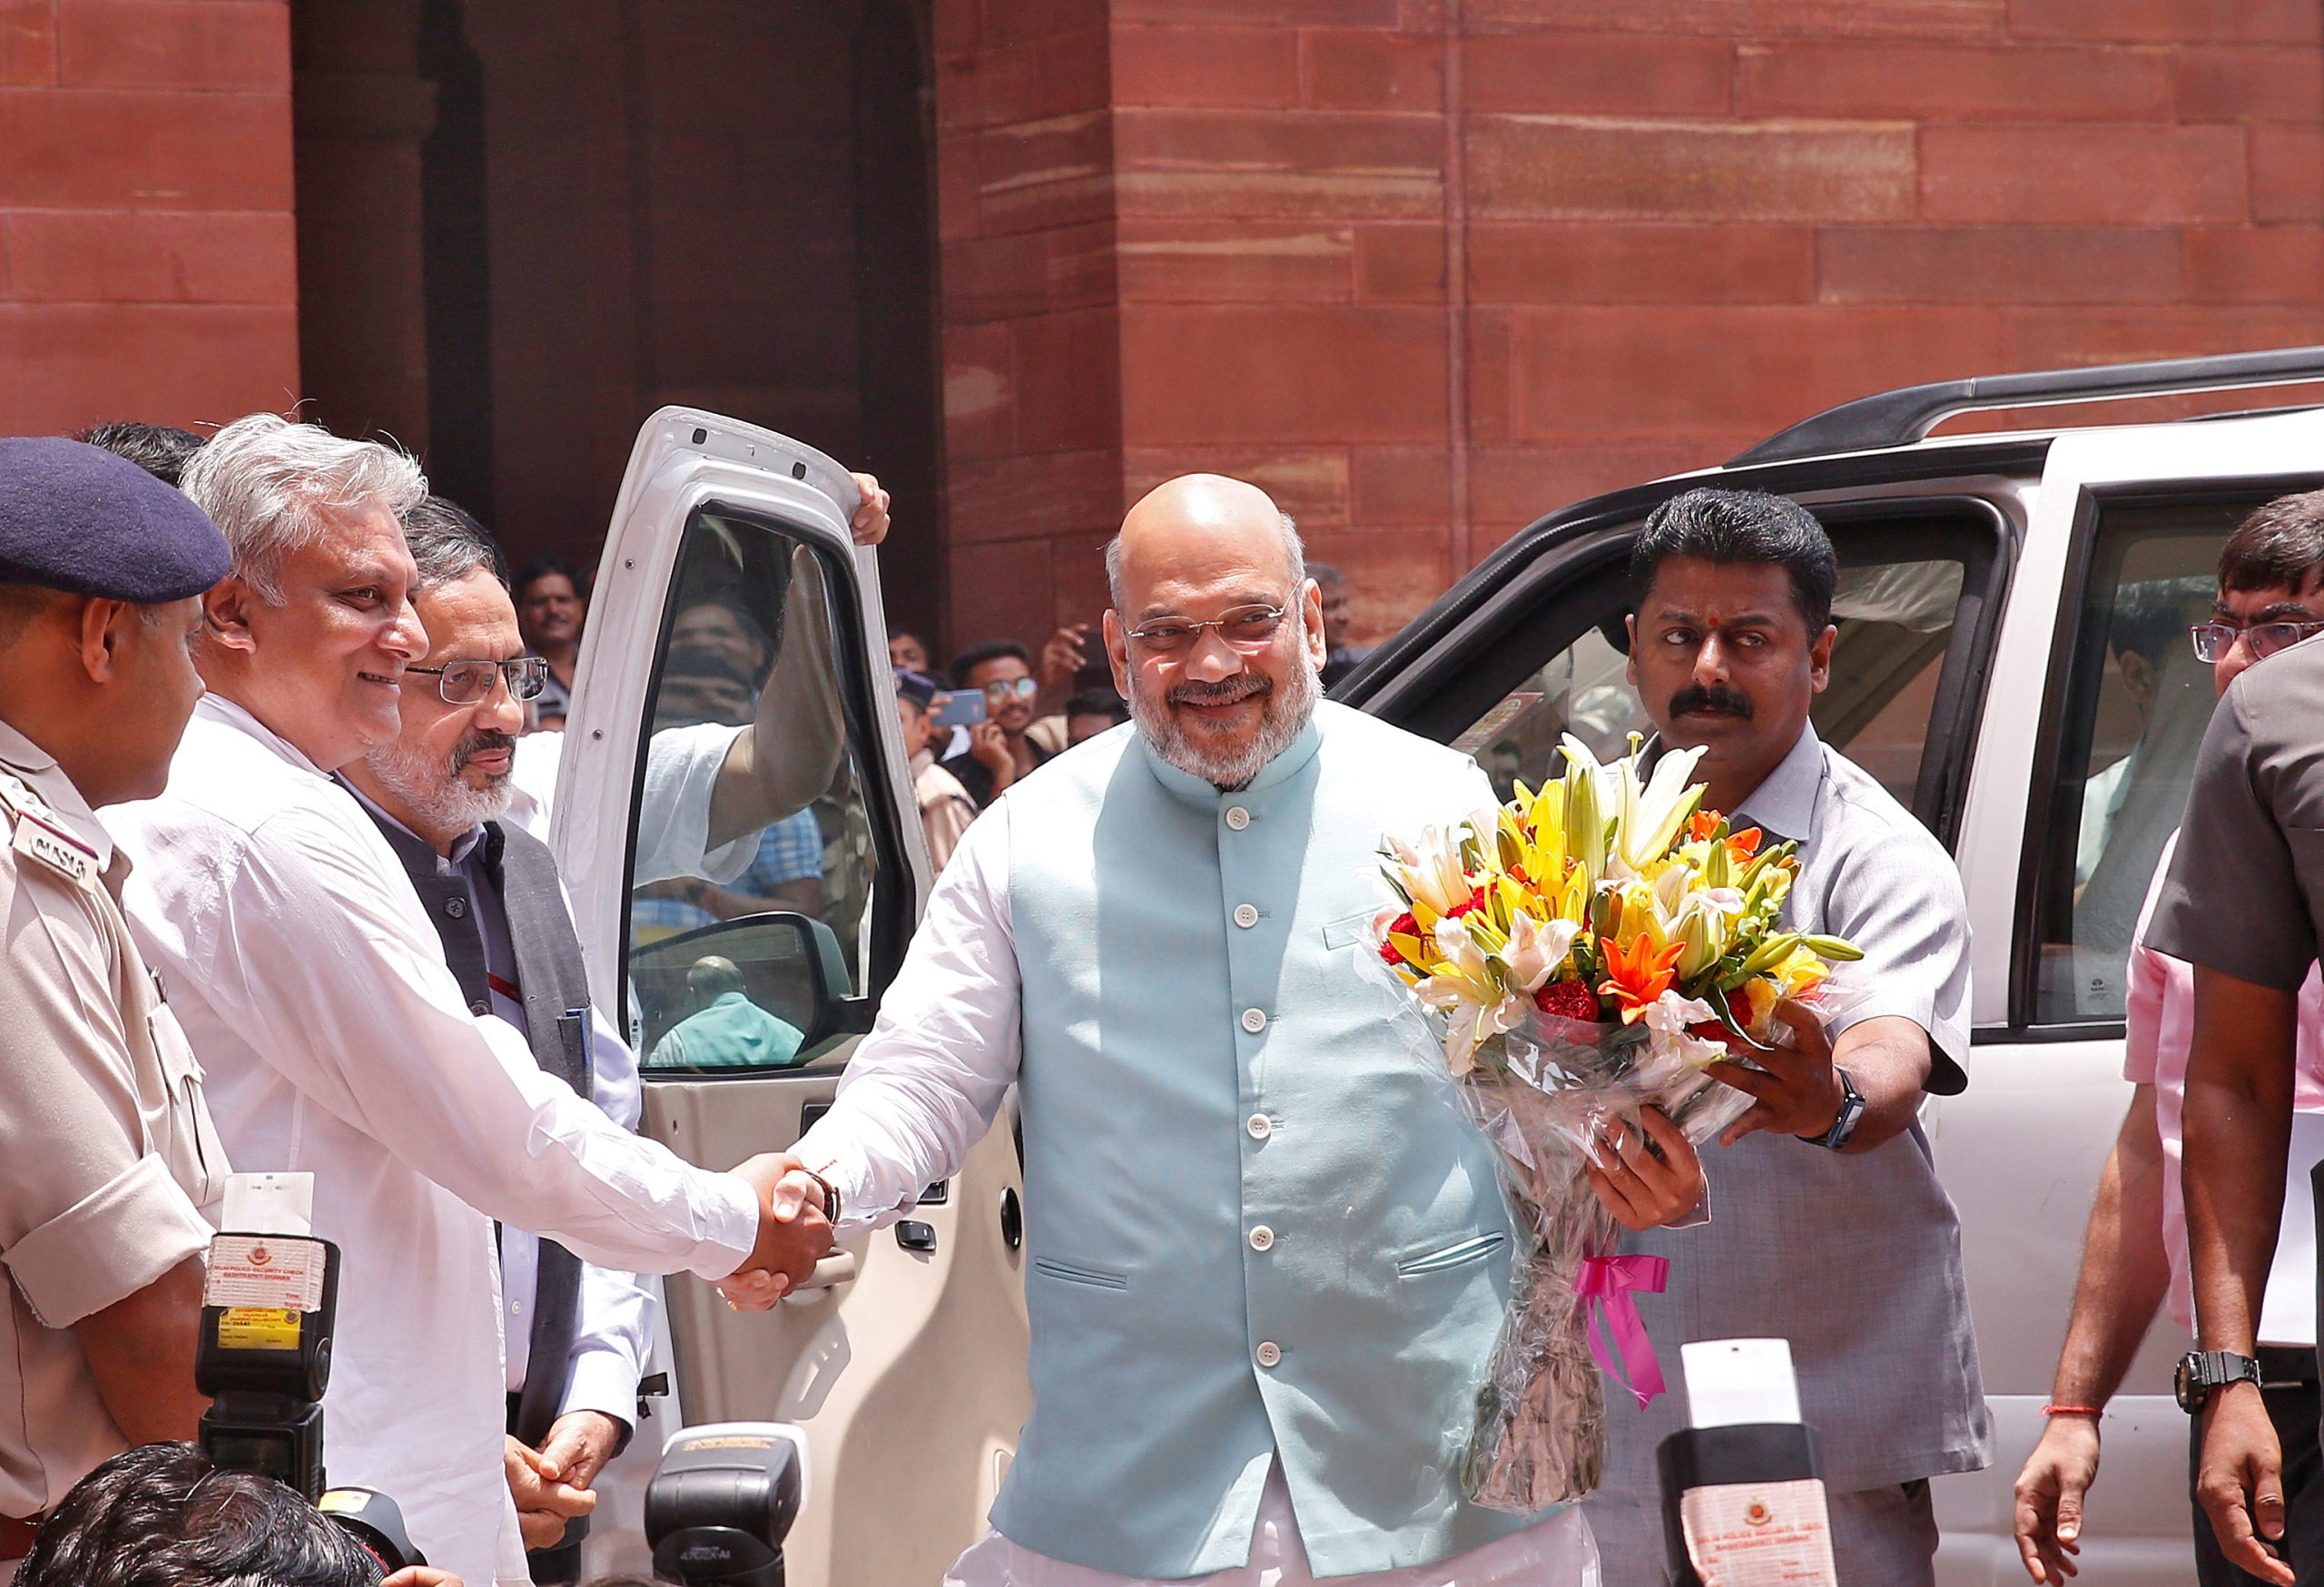 India's Home Minister Amit Shah receives a flower bouquet upon his arrival at the home ministry in New Delhi, India, June 1, 2019. REUTERS/Altaf Hussain/File Photo